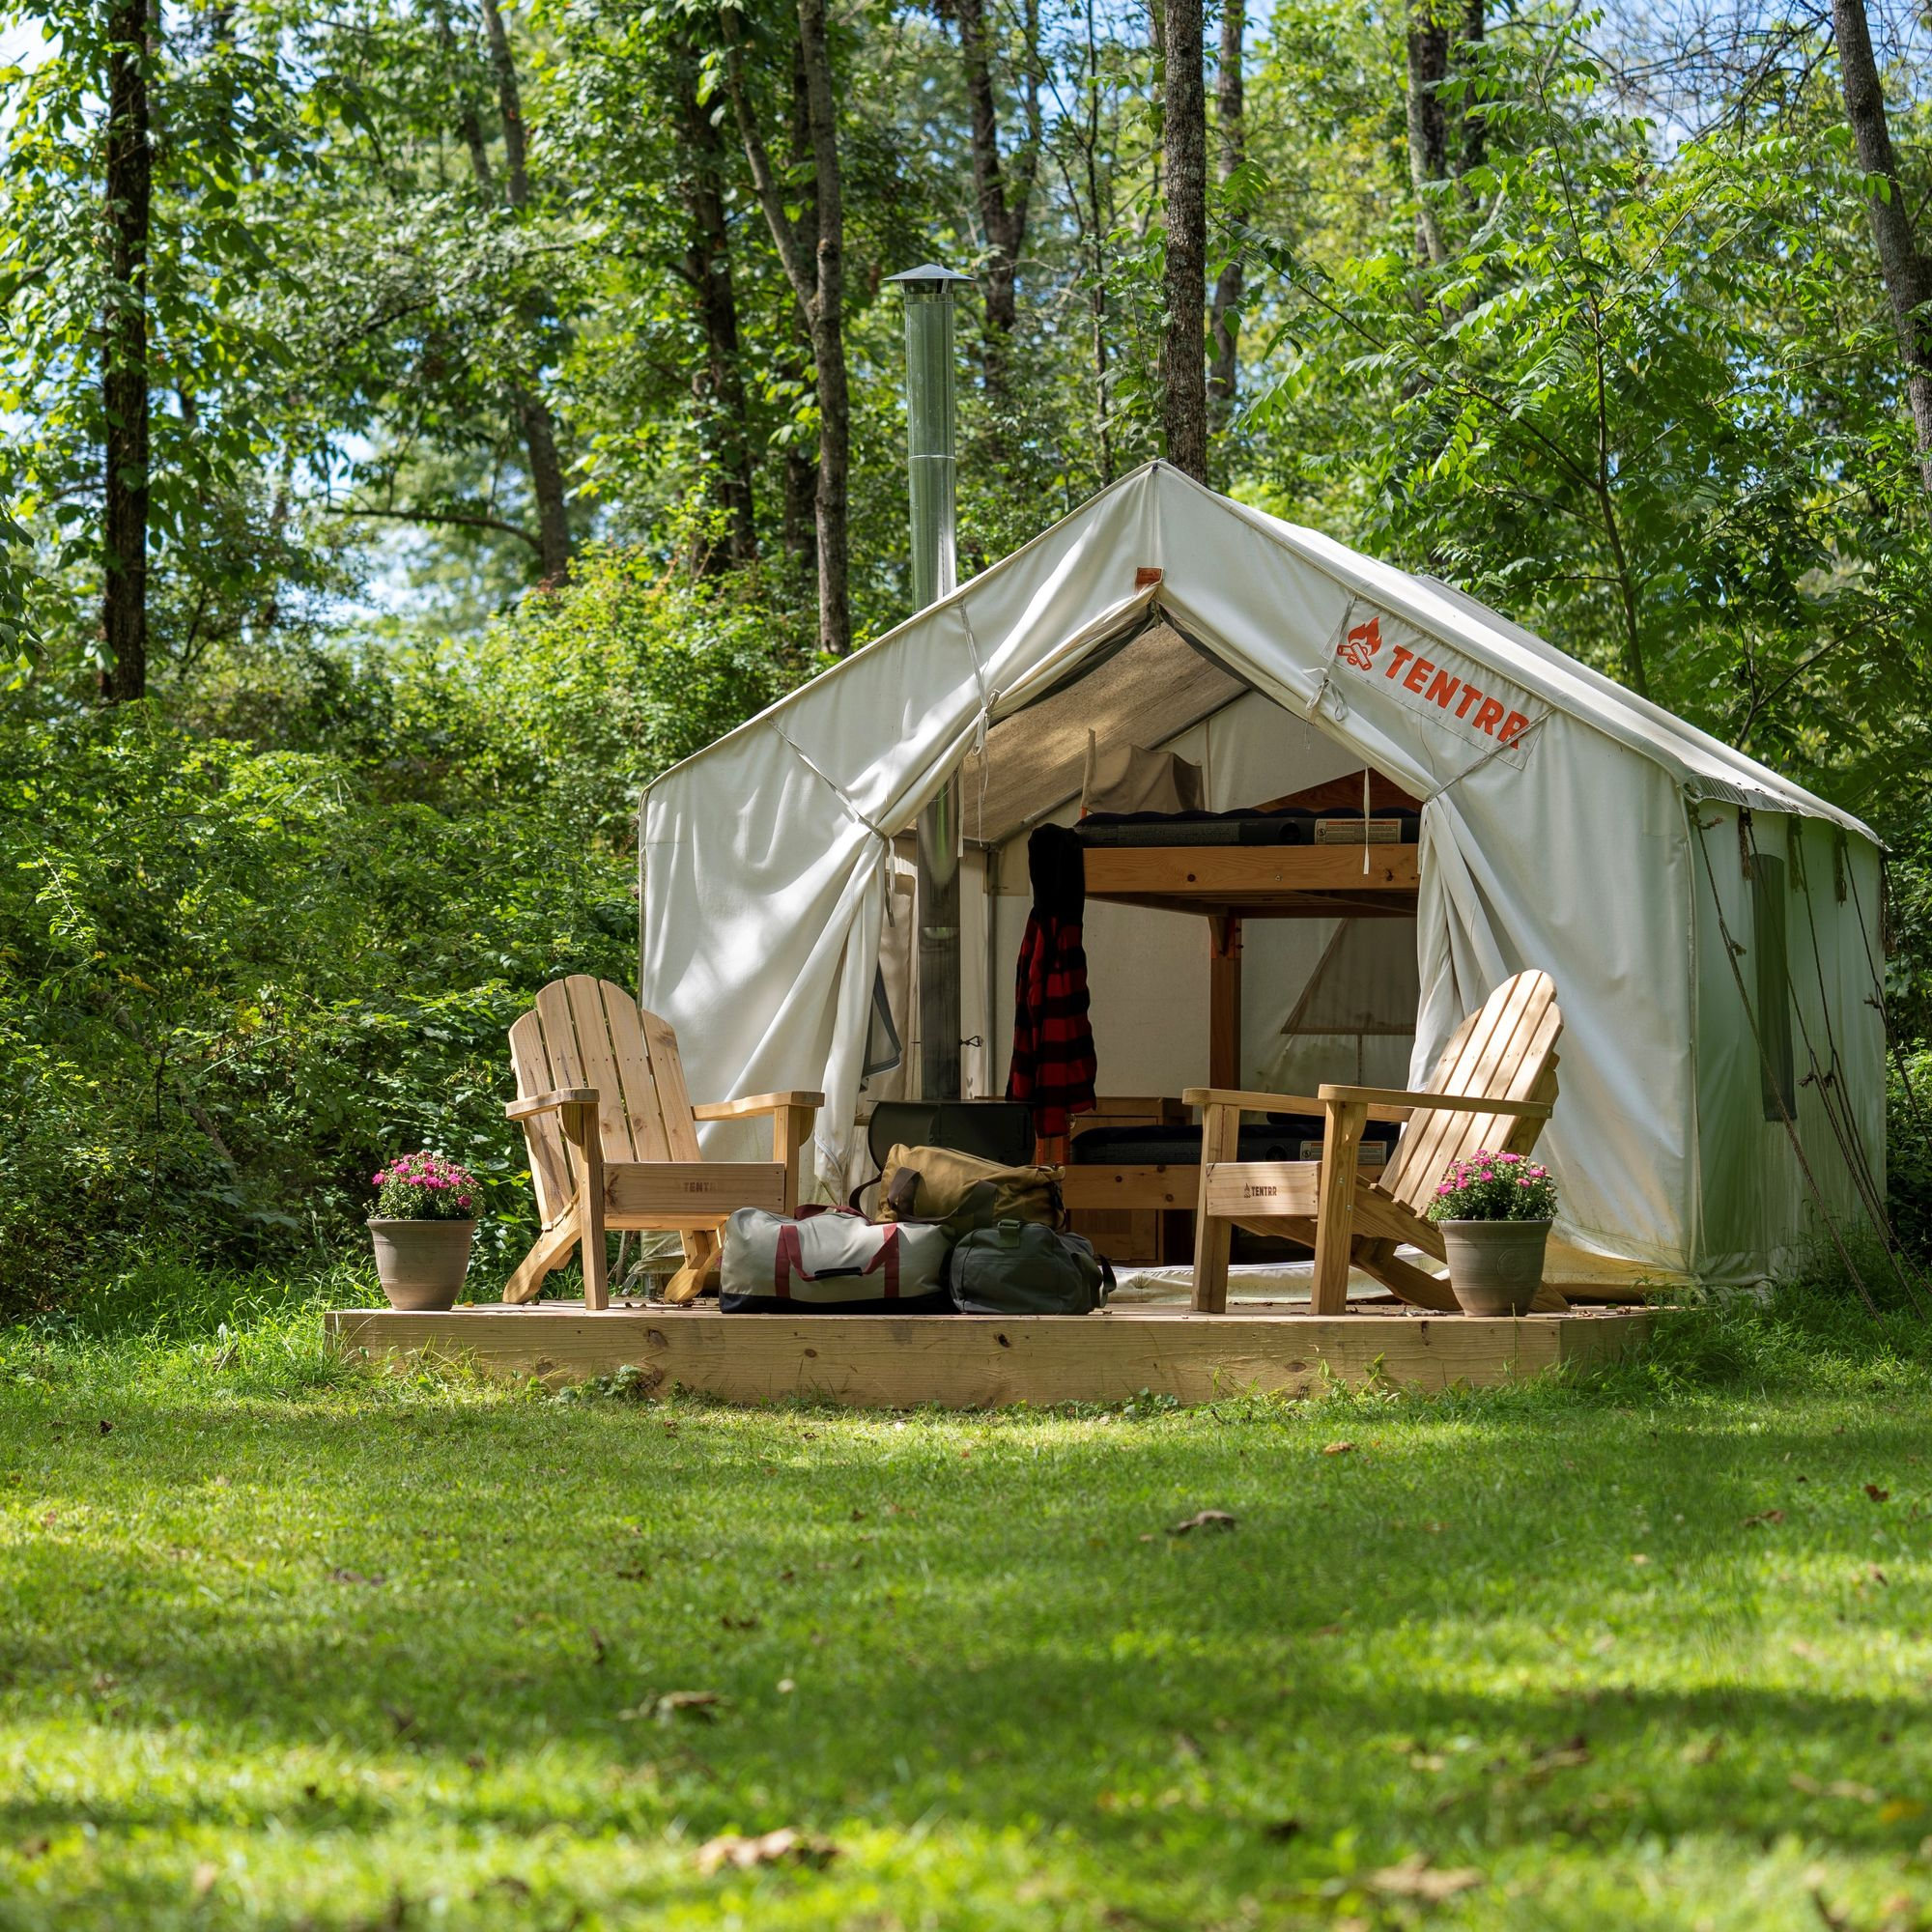 Tentrr Presents A Better Way to Camp and Glamp That Helps Both Campers and Property Owners